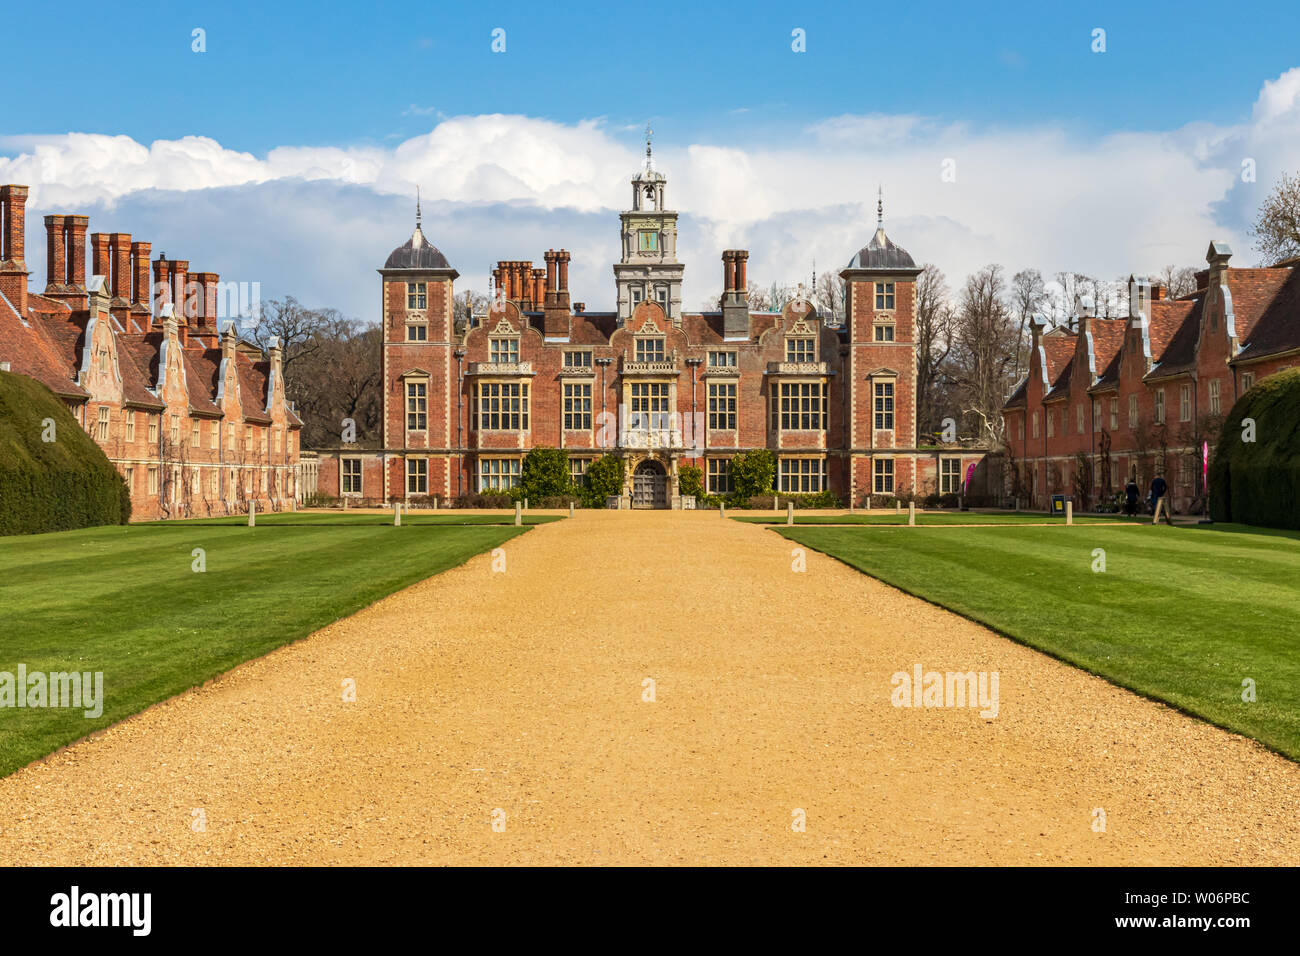 frontal-aspect-of-blickling-hall-in-norf